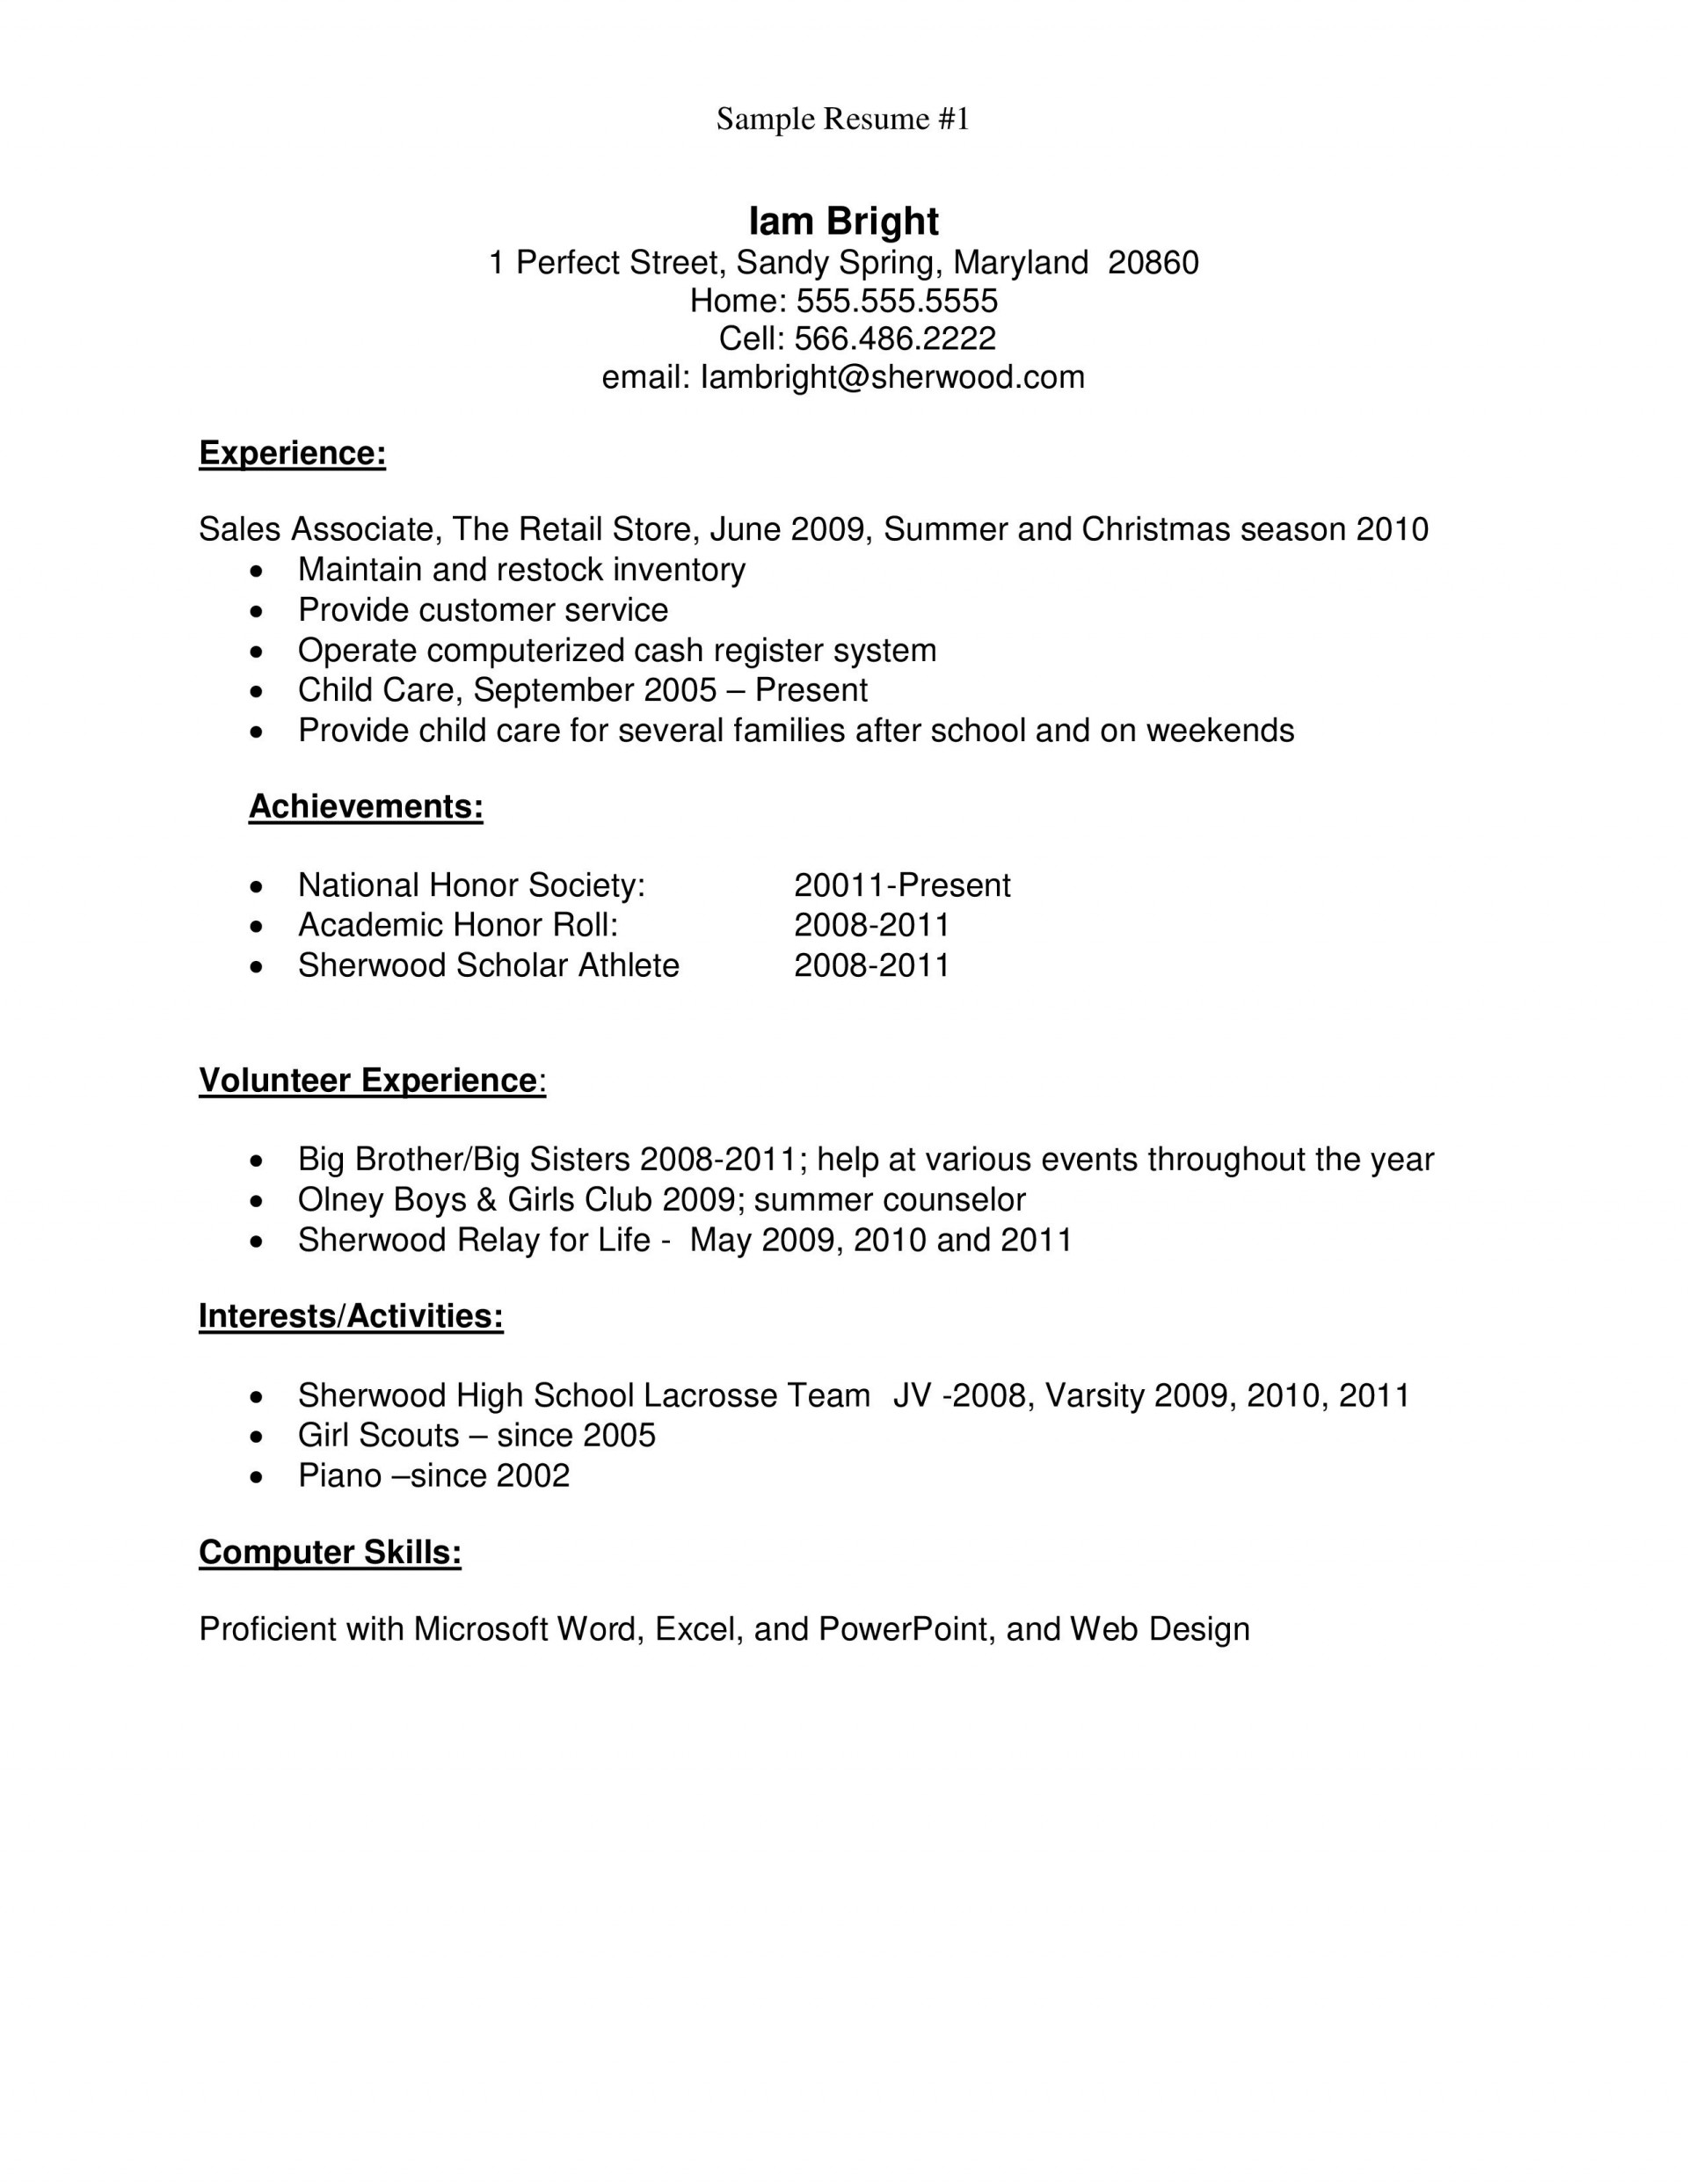 resume template high school students addictionary for student first job fascinating Resume Resume Template For High School Student First Job